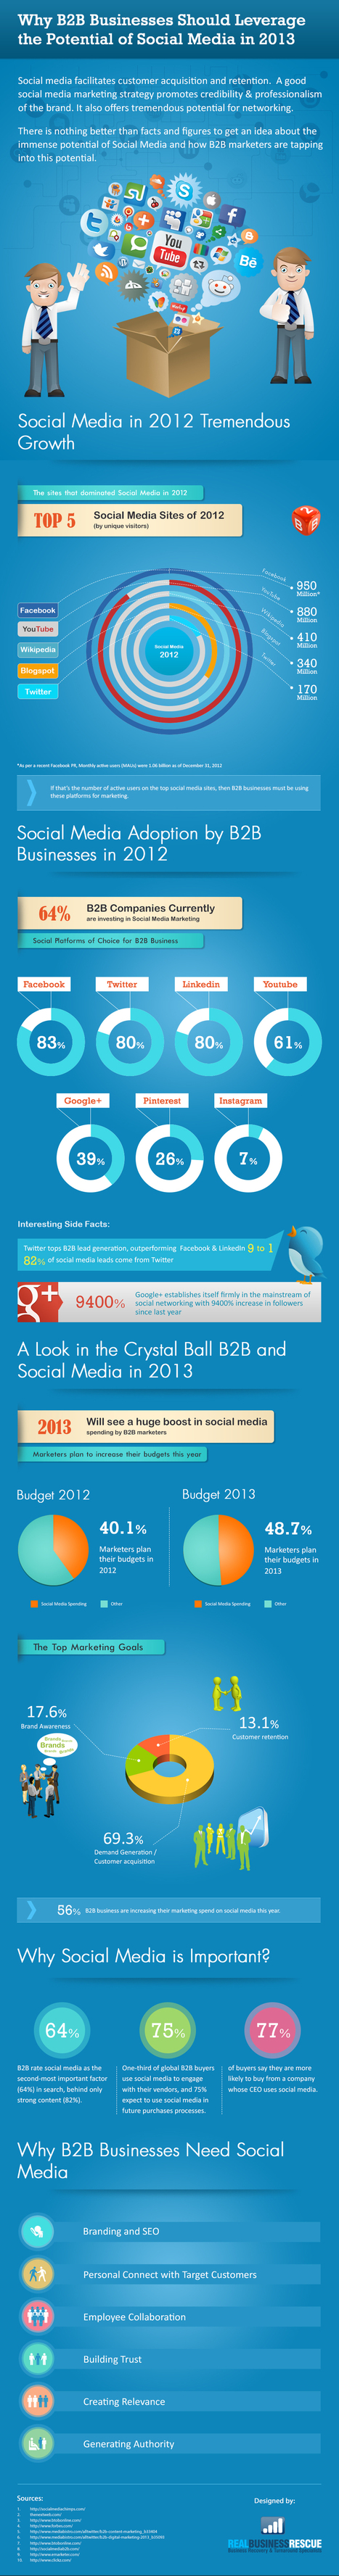 Why B2B Brands Must Invest In Social Media In 2013 [INFOGRAPHIC] | Integrated Marketing Communications--shaokang | Scoop.it